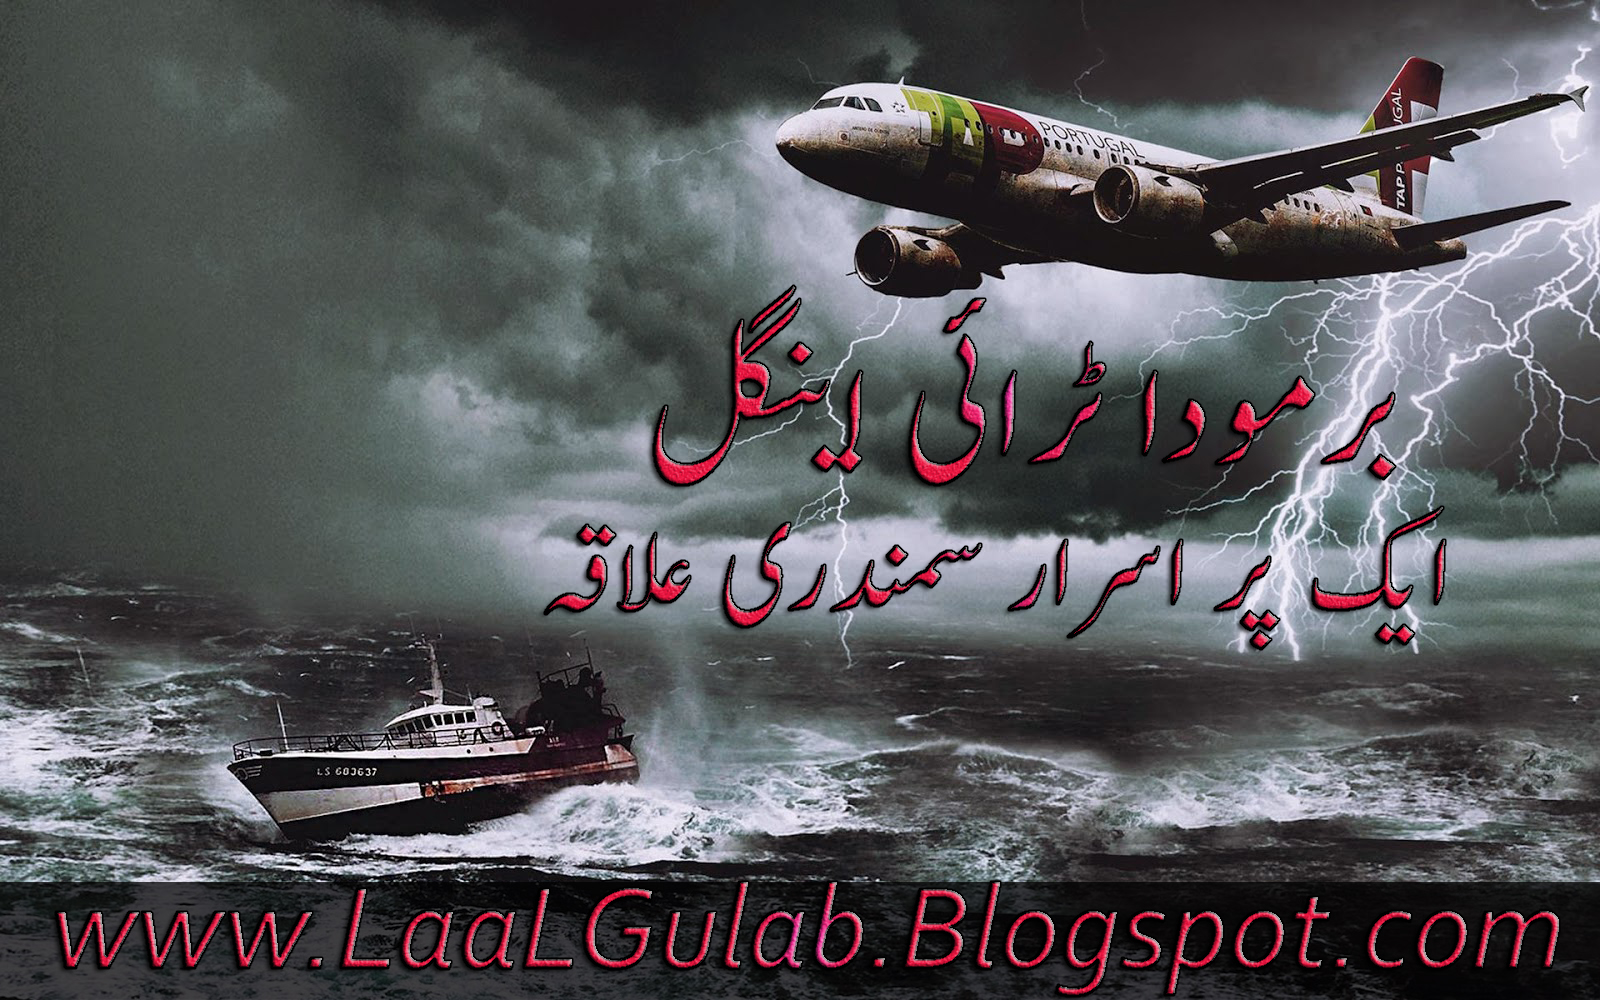 bermuda triangle urdu history bermuda triangle ki haqiqat kya hai  what is and where is bermuda triangle kahan hai kaha jata hai ke ye shaitani tikon hai yahan se jo hawai jahaz aur behri jahaz guzarte hain woh kabhi laut